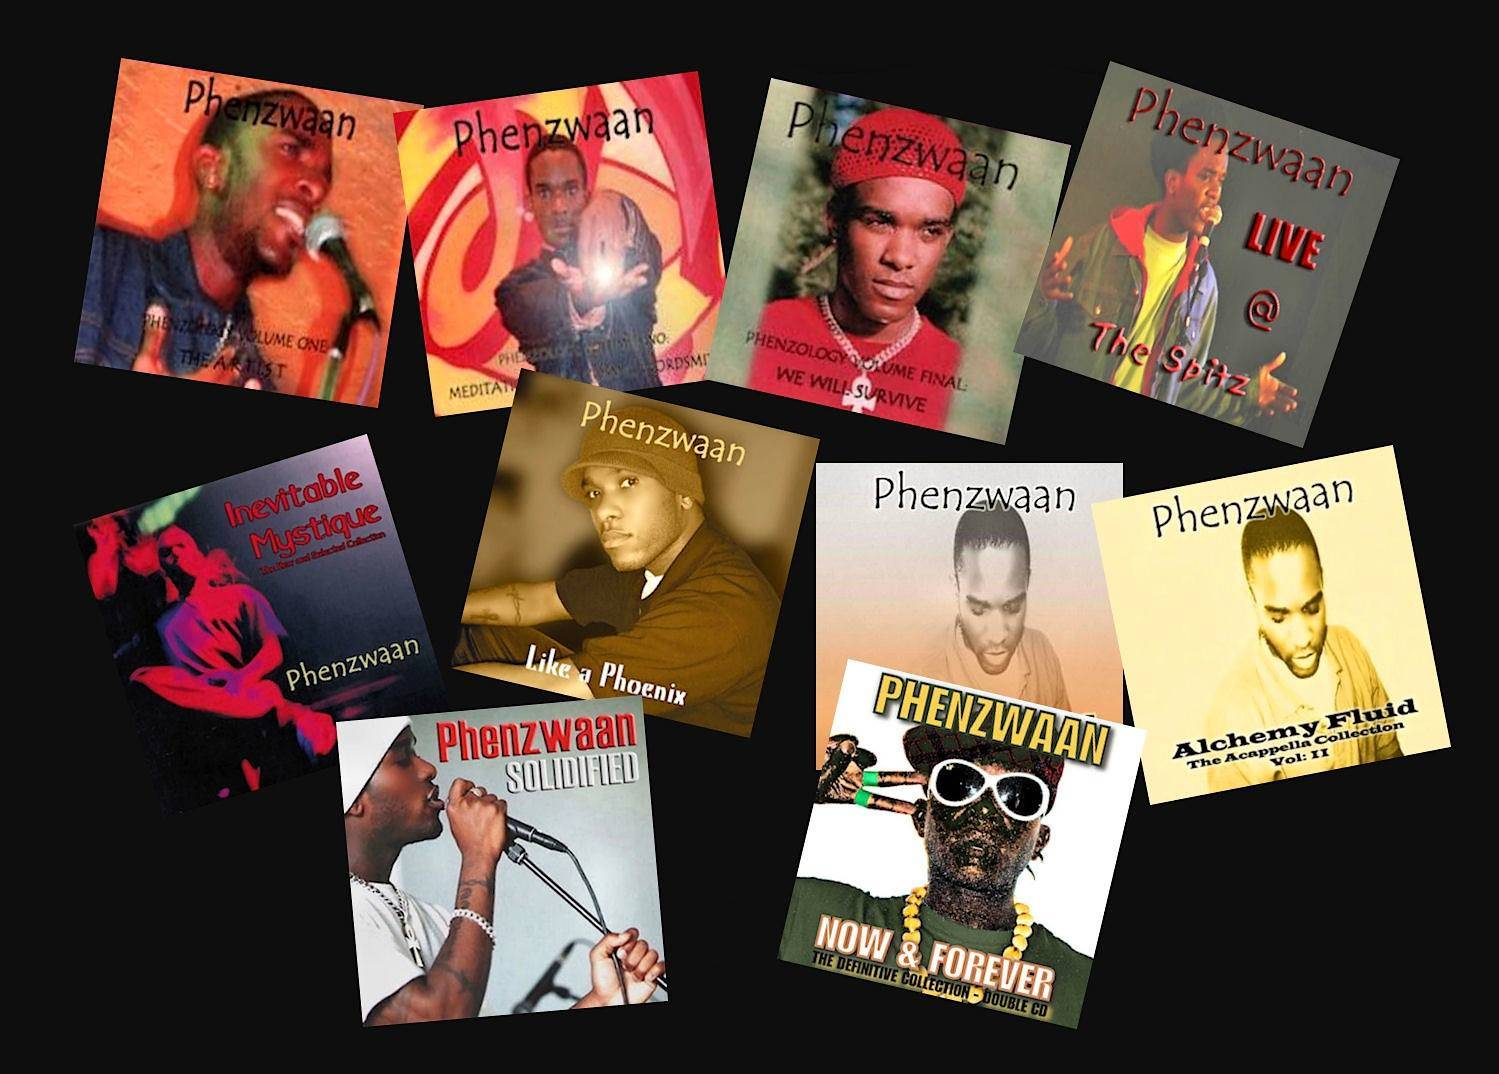 Phoenix James Phenzwaan Poetry and Spoken Word CD Albums Collection - Discography